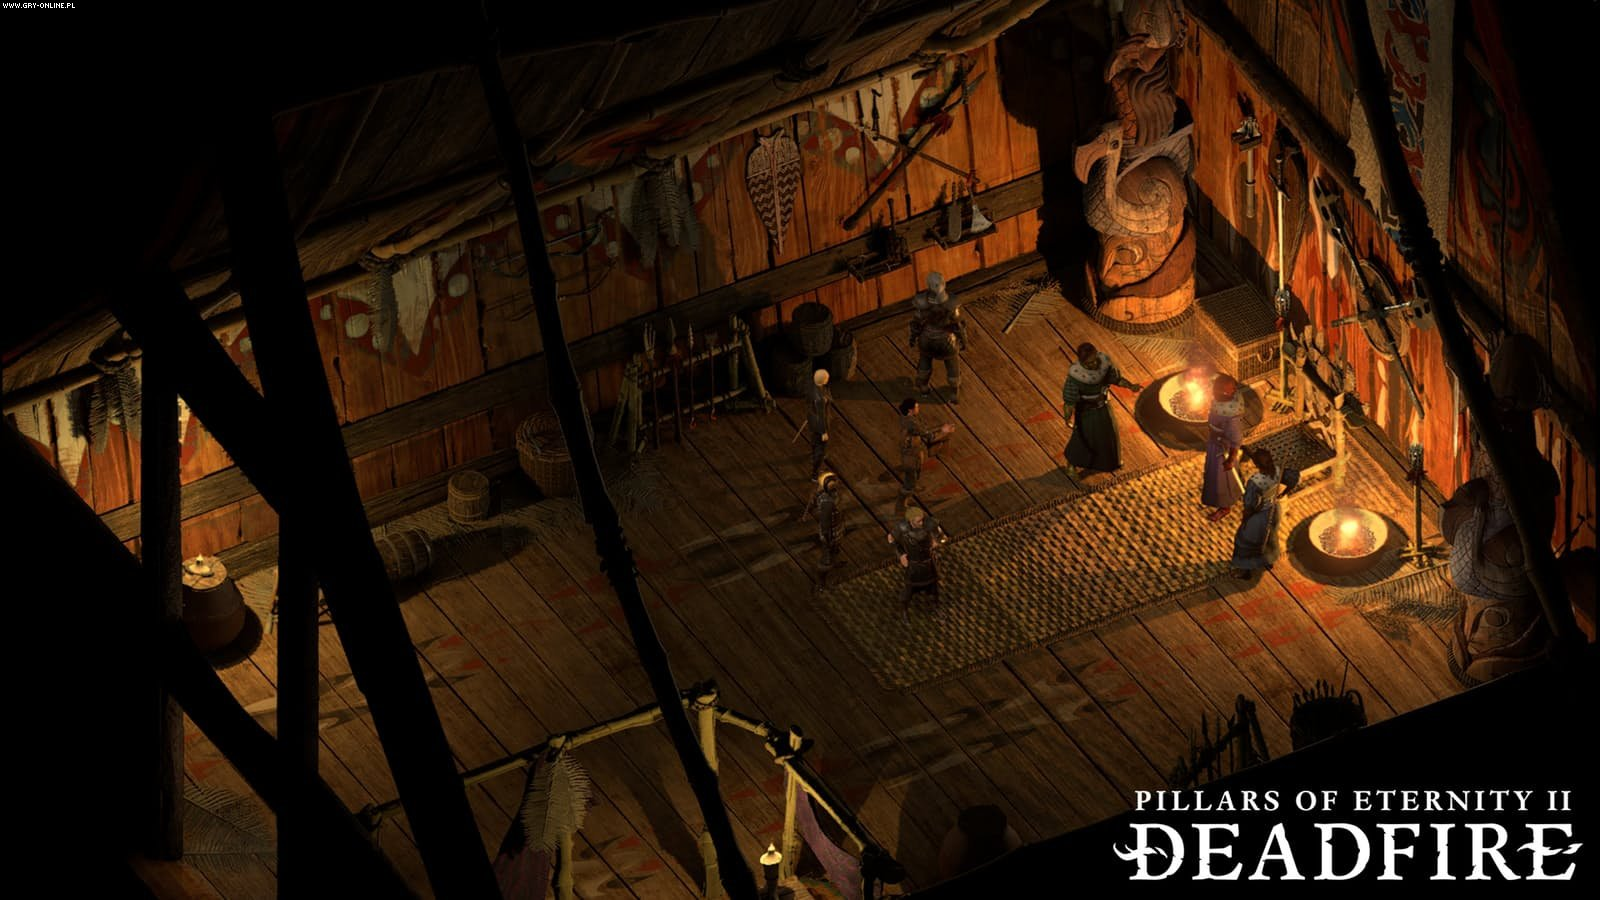 Pillars of Eternity II: Deadfire PC, PS4, XONE, Switch Gry Screen 24/27, Obsidian Entertainment, Versus Evil